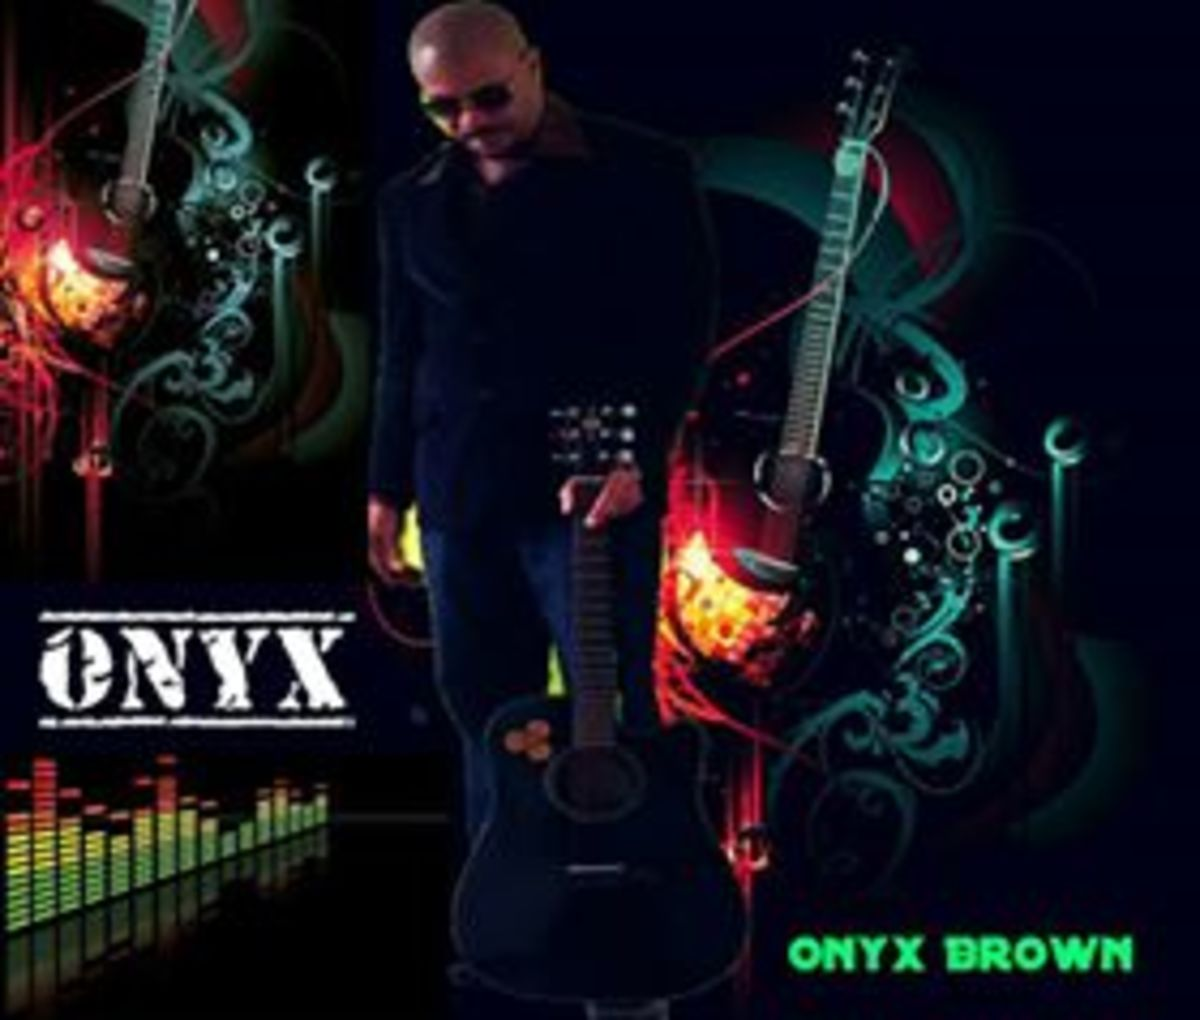 Everyone enjoyed the sounds of Onyx Brown.